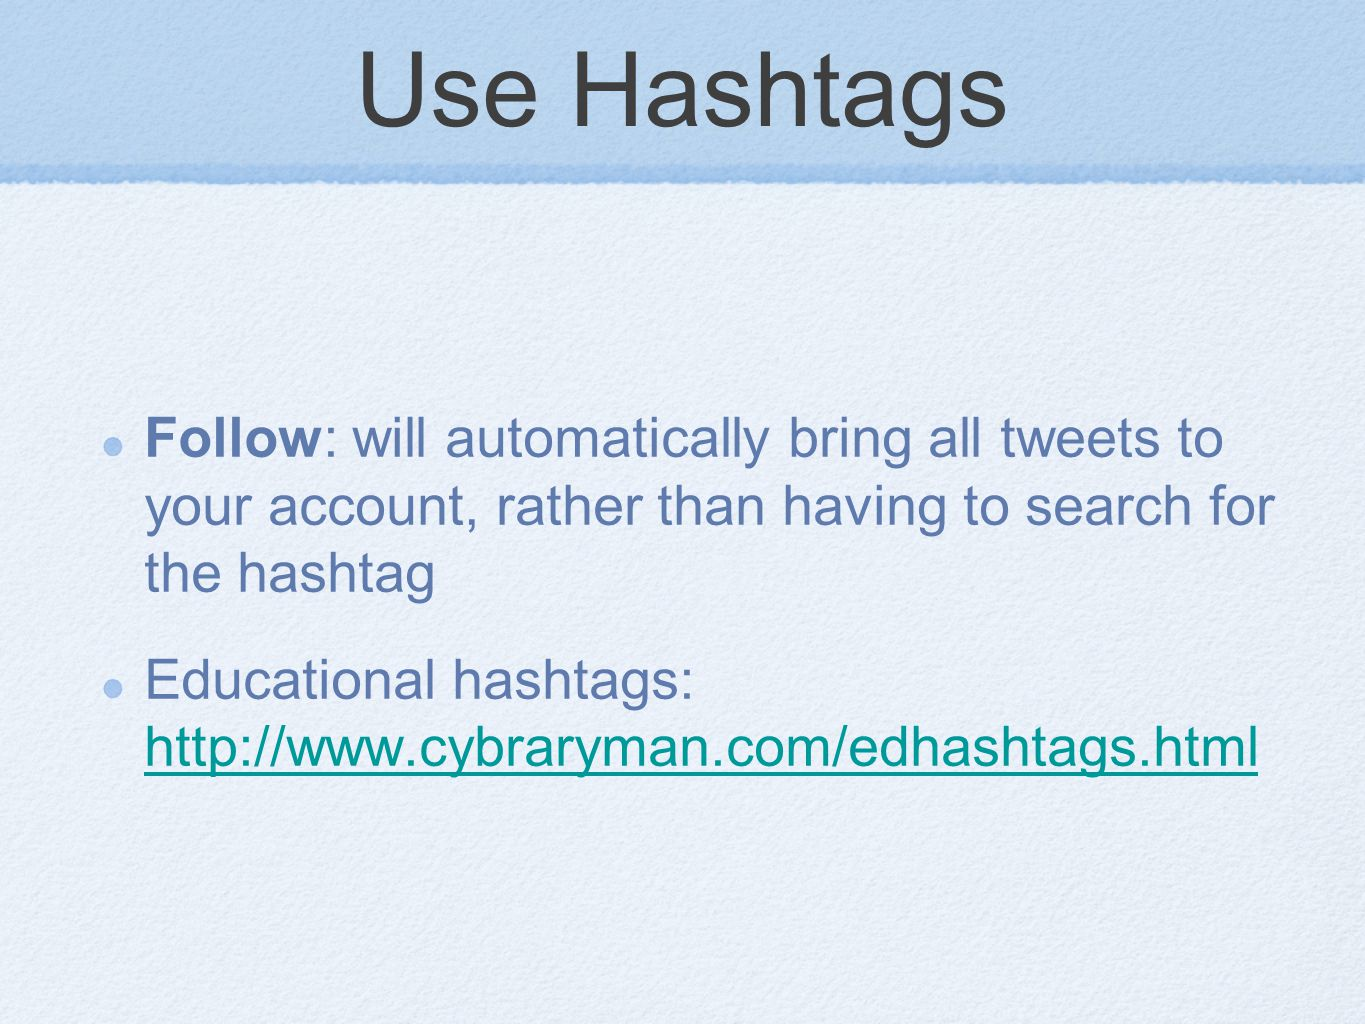 Use Hashtags Follow: will automatically bring all tweets to your account, rather than having to search for the hashtag Educational hashtags: http://www.cybraryman.com/edhashtags.html http://www.cybraryman.com/edhashtags.html